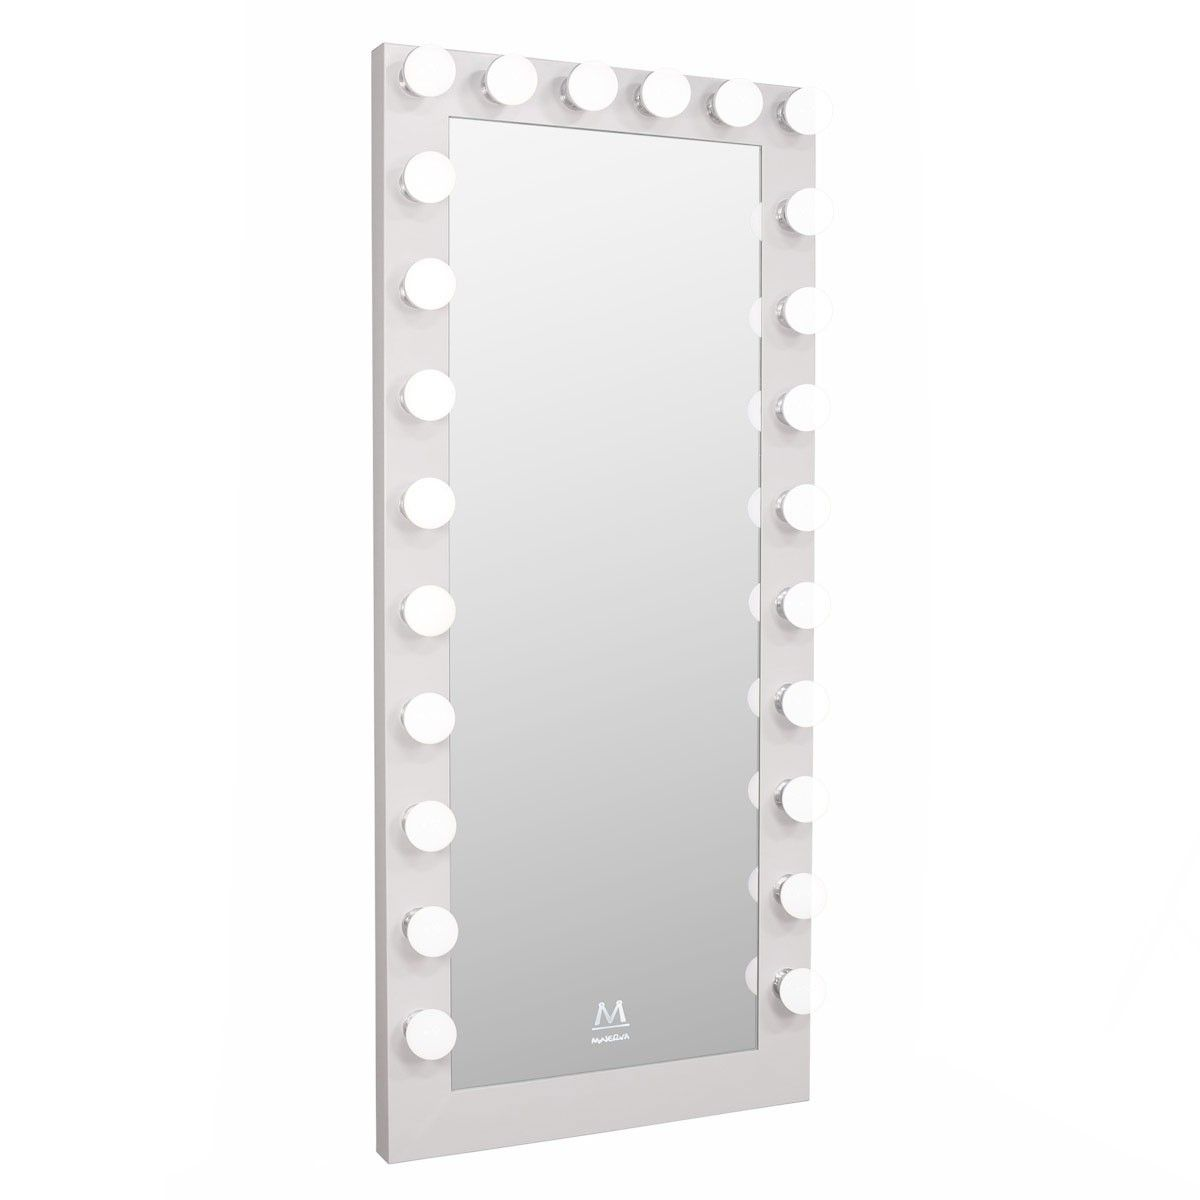 P Look Your Best Everyday With The Perfect Tool For Your Daily Make Up Routine The Paramount Full Length Le Vanity Mirror Floor Mirror With Lights Led Vanity